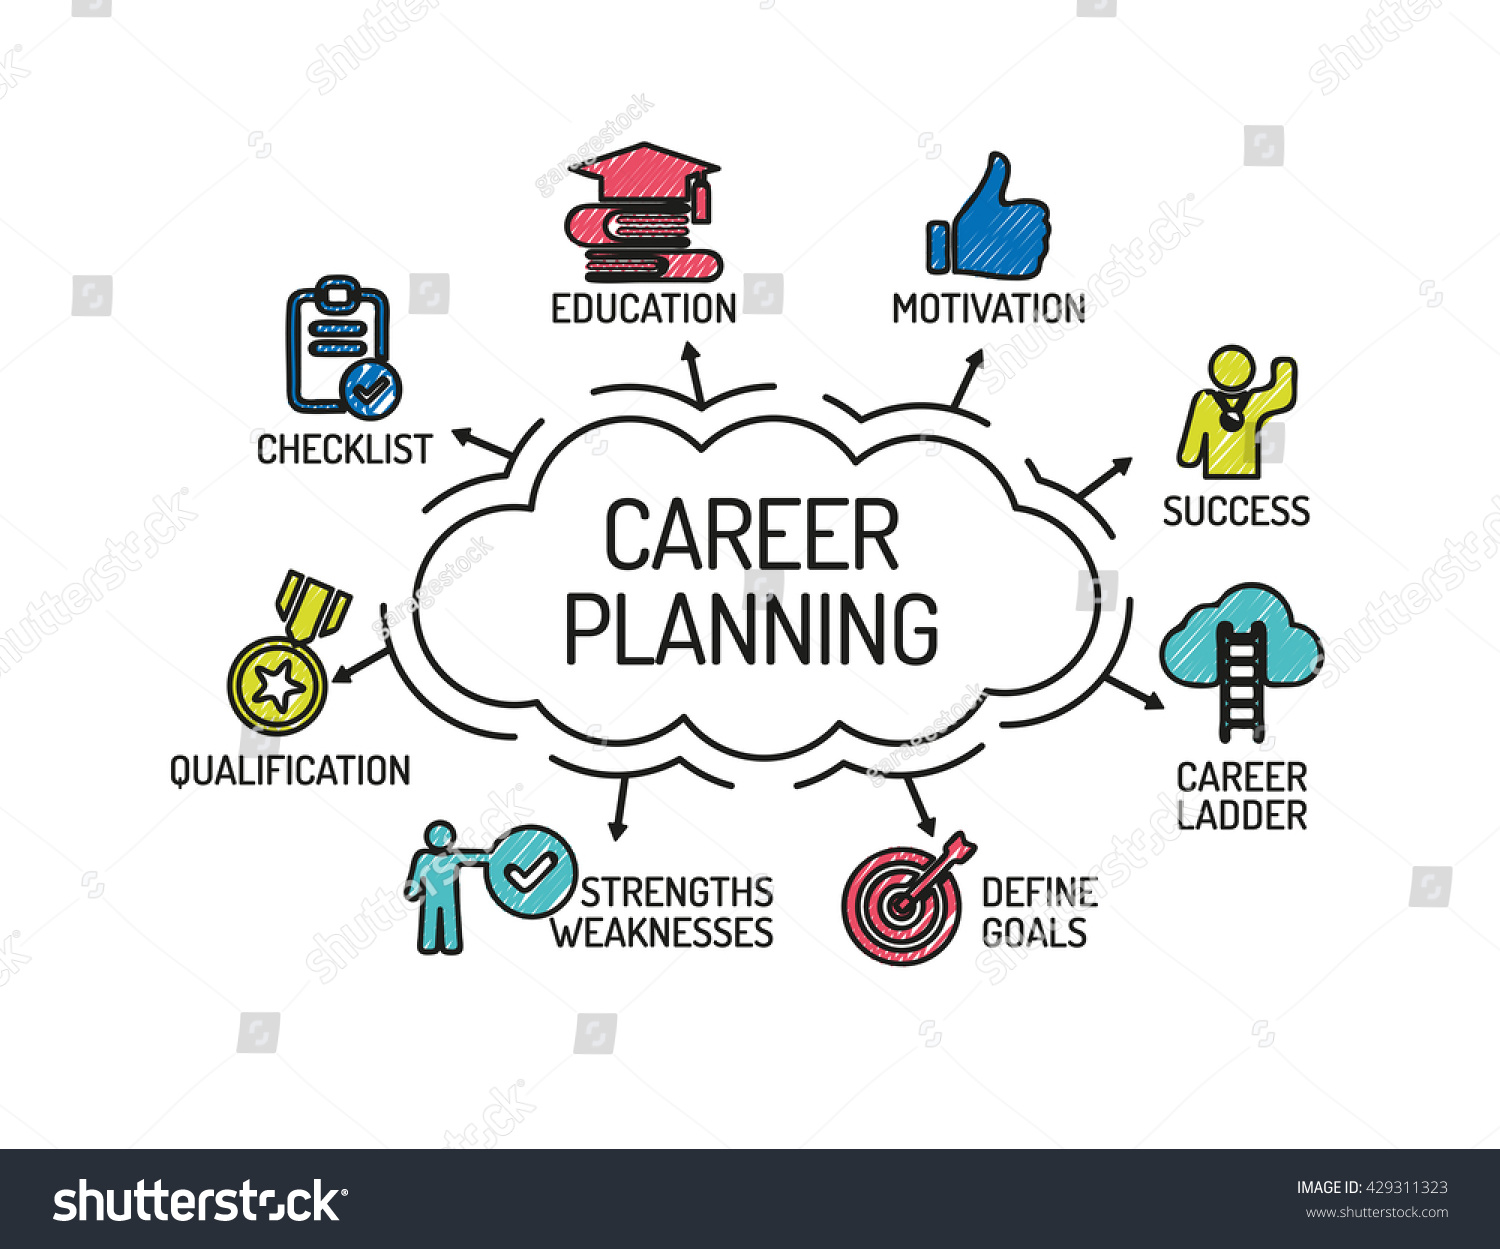 career planning chart keywords icons sketch stock vector  career planning chart keywords and icons sketch